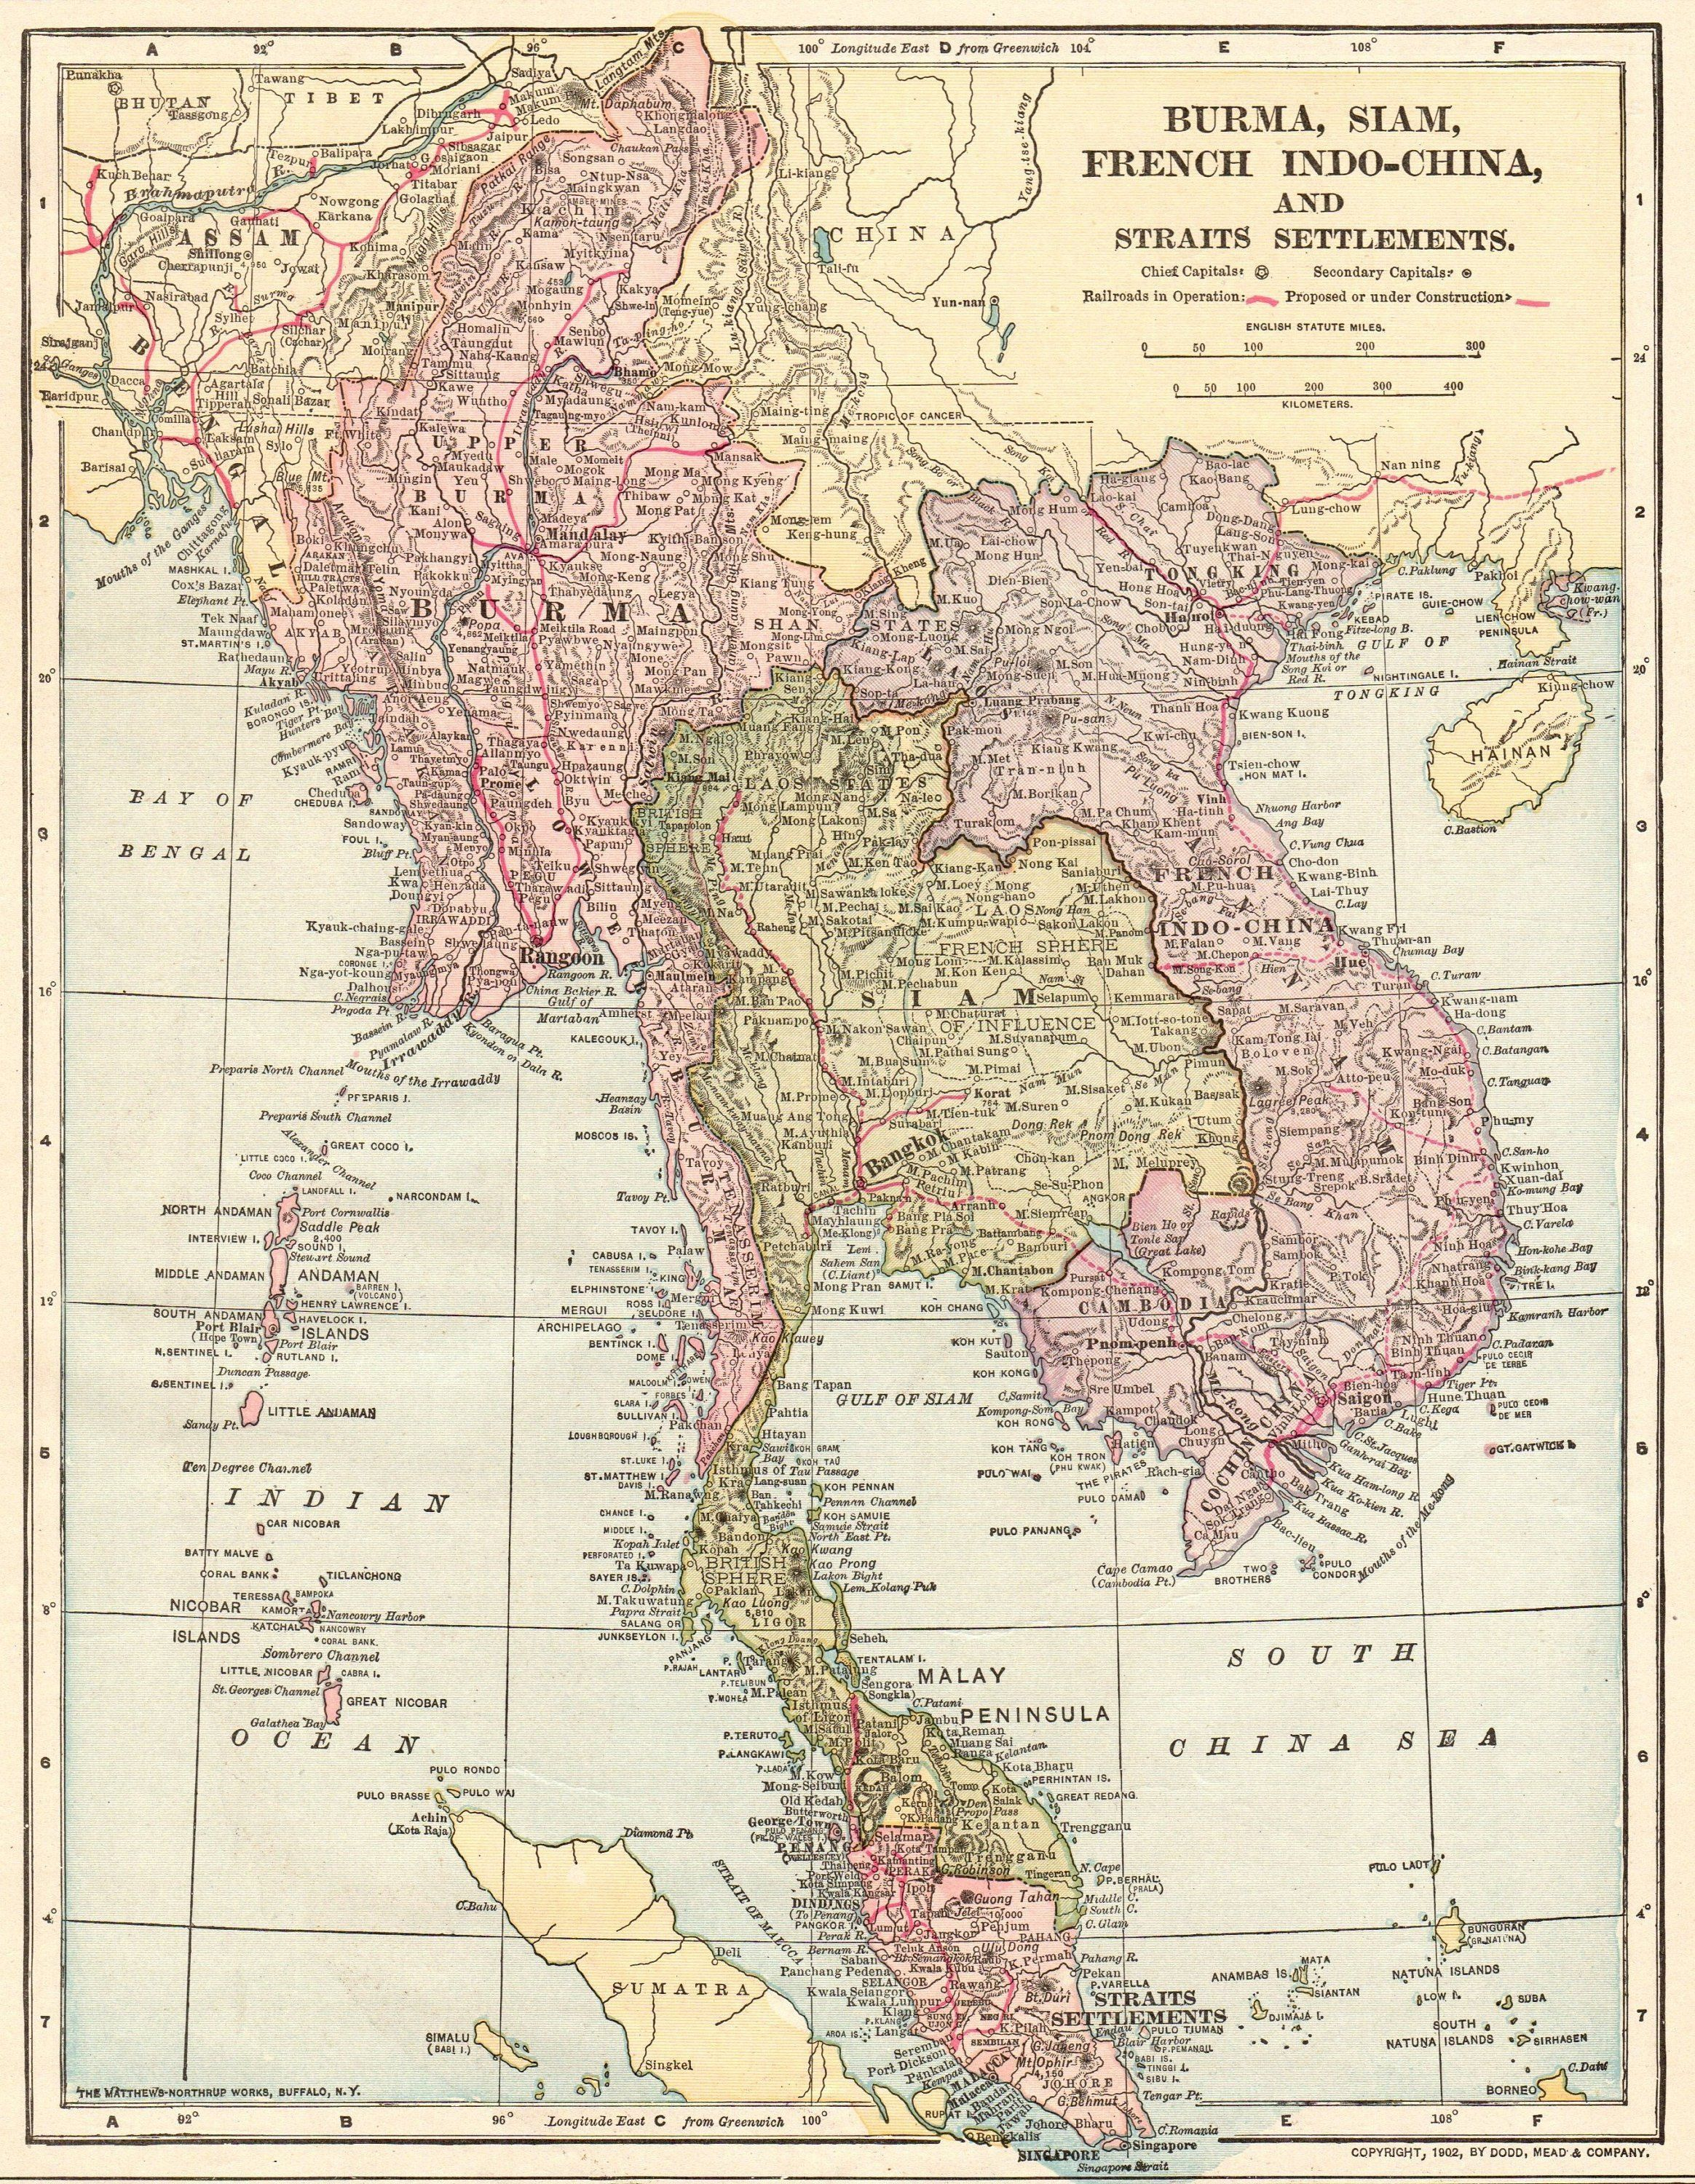 1902 Vintage Map Of Thailand Burma Map Indochina And Siam Map